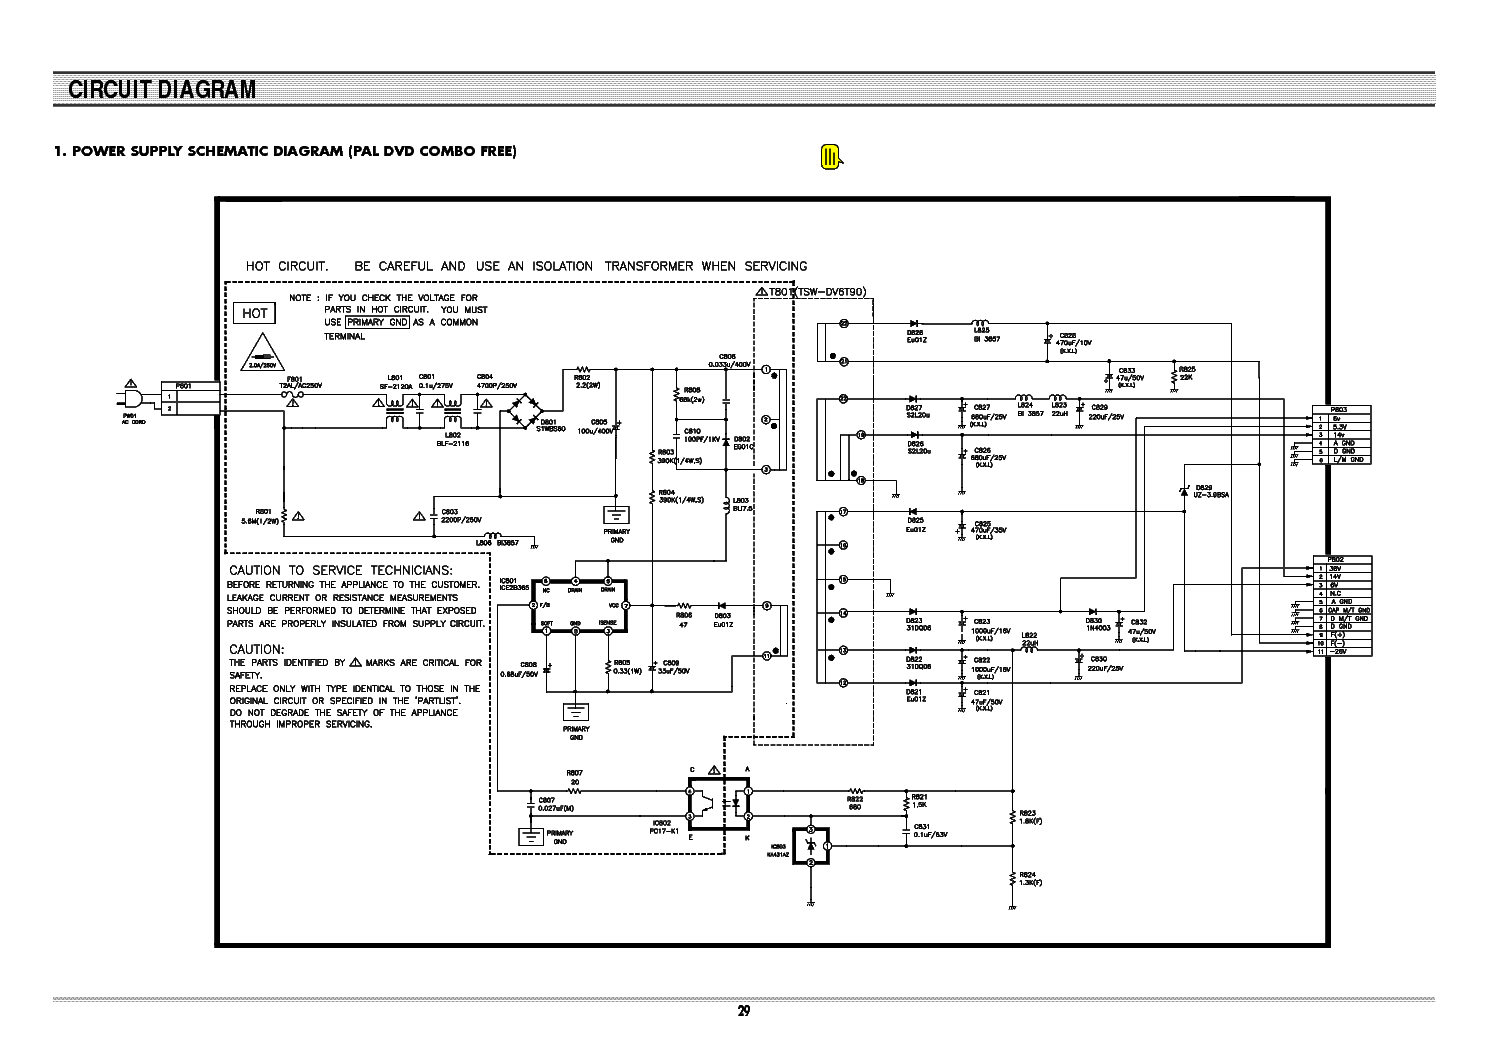 Daewoo Sd Sch Service Manual Download Schematics